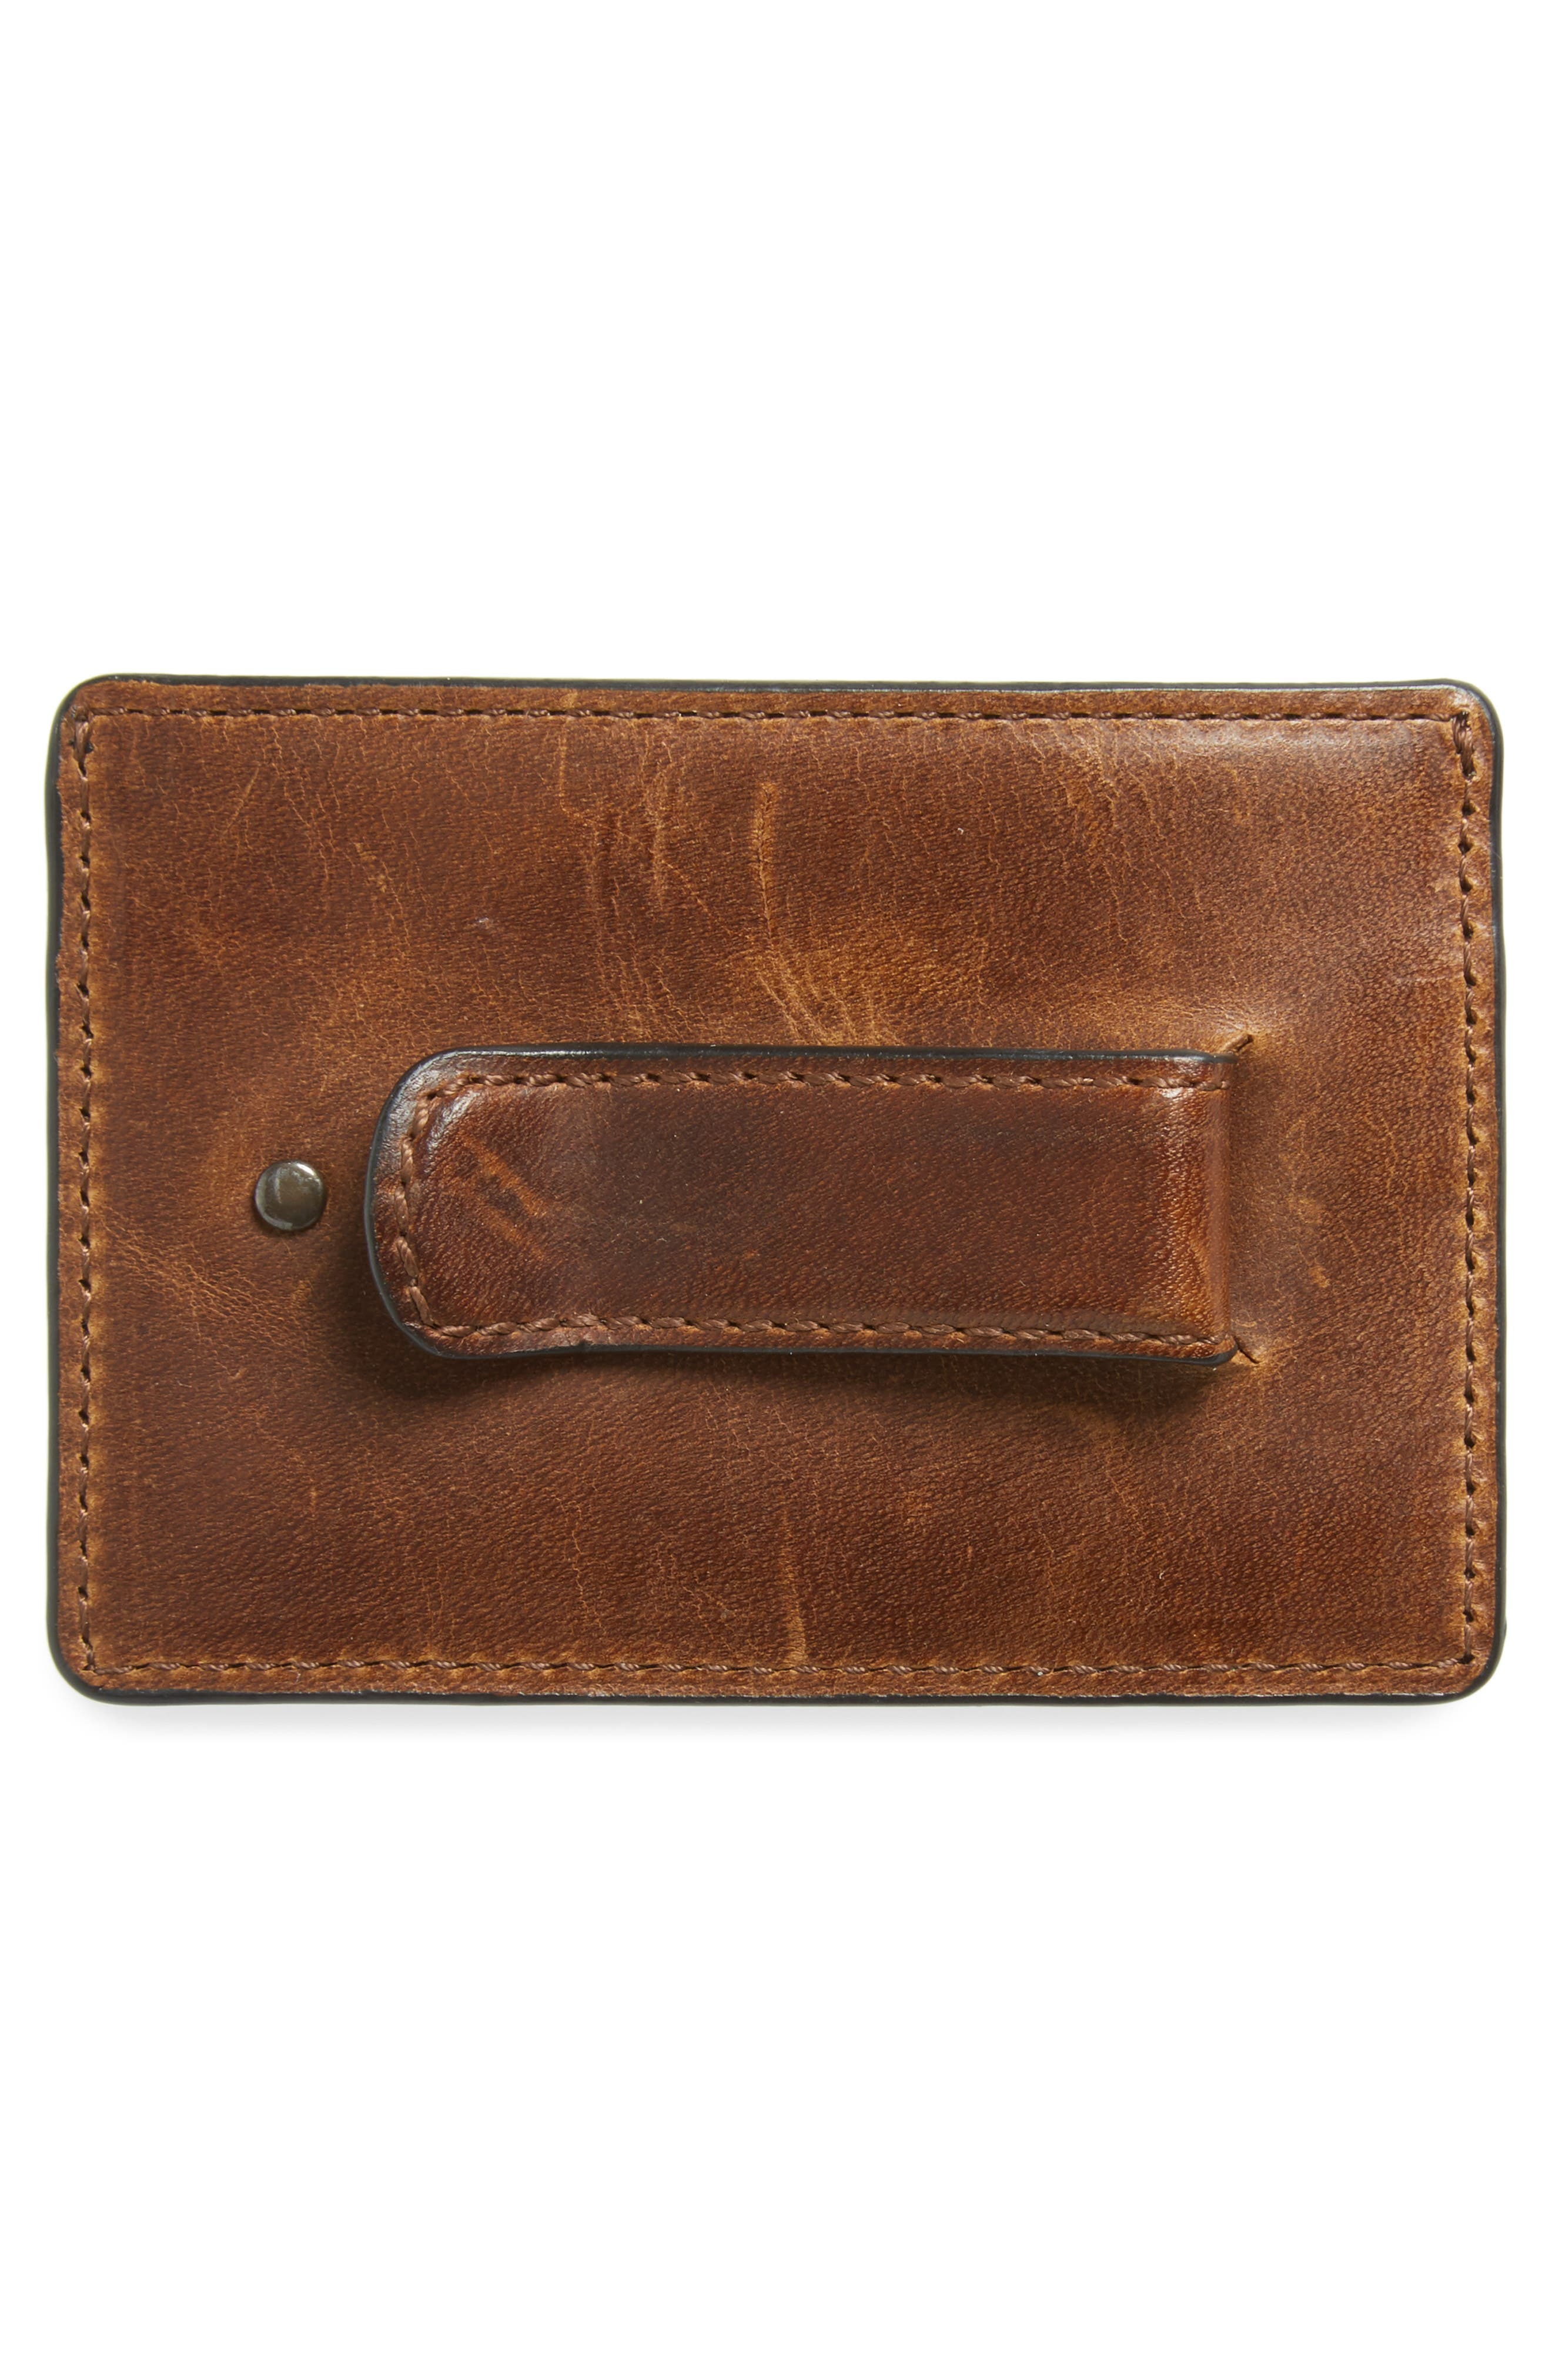 Logan Leather Money Clip Card Case,                             Alternate thumbnail 2, color,                             DARK BROWN